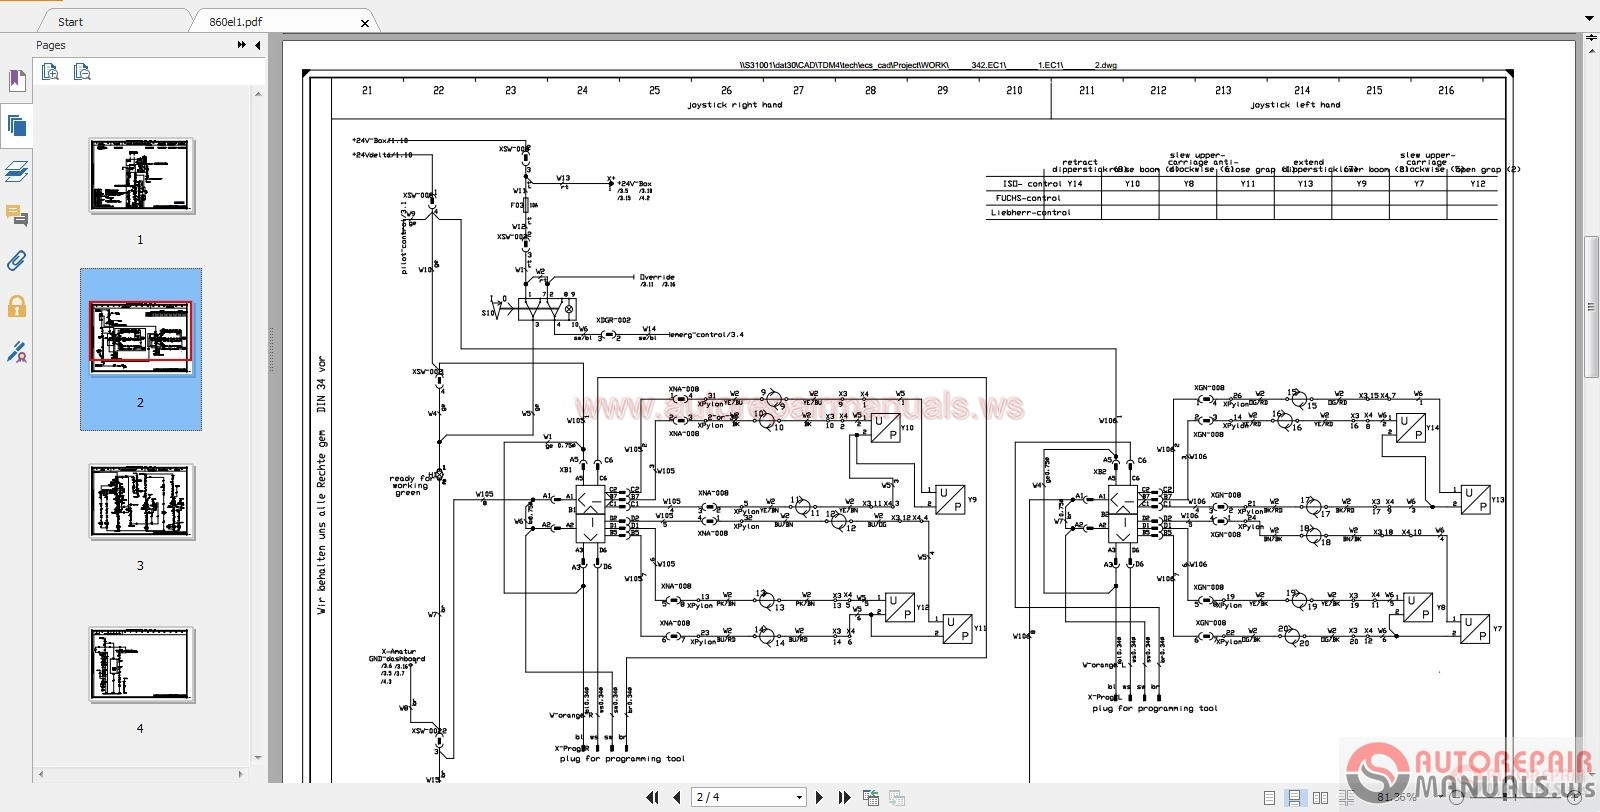 raven 4400 wiring diagram